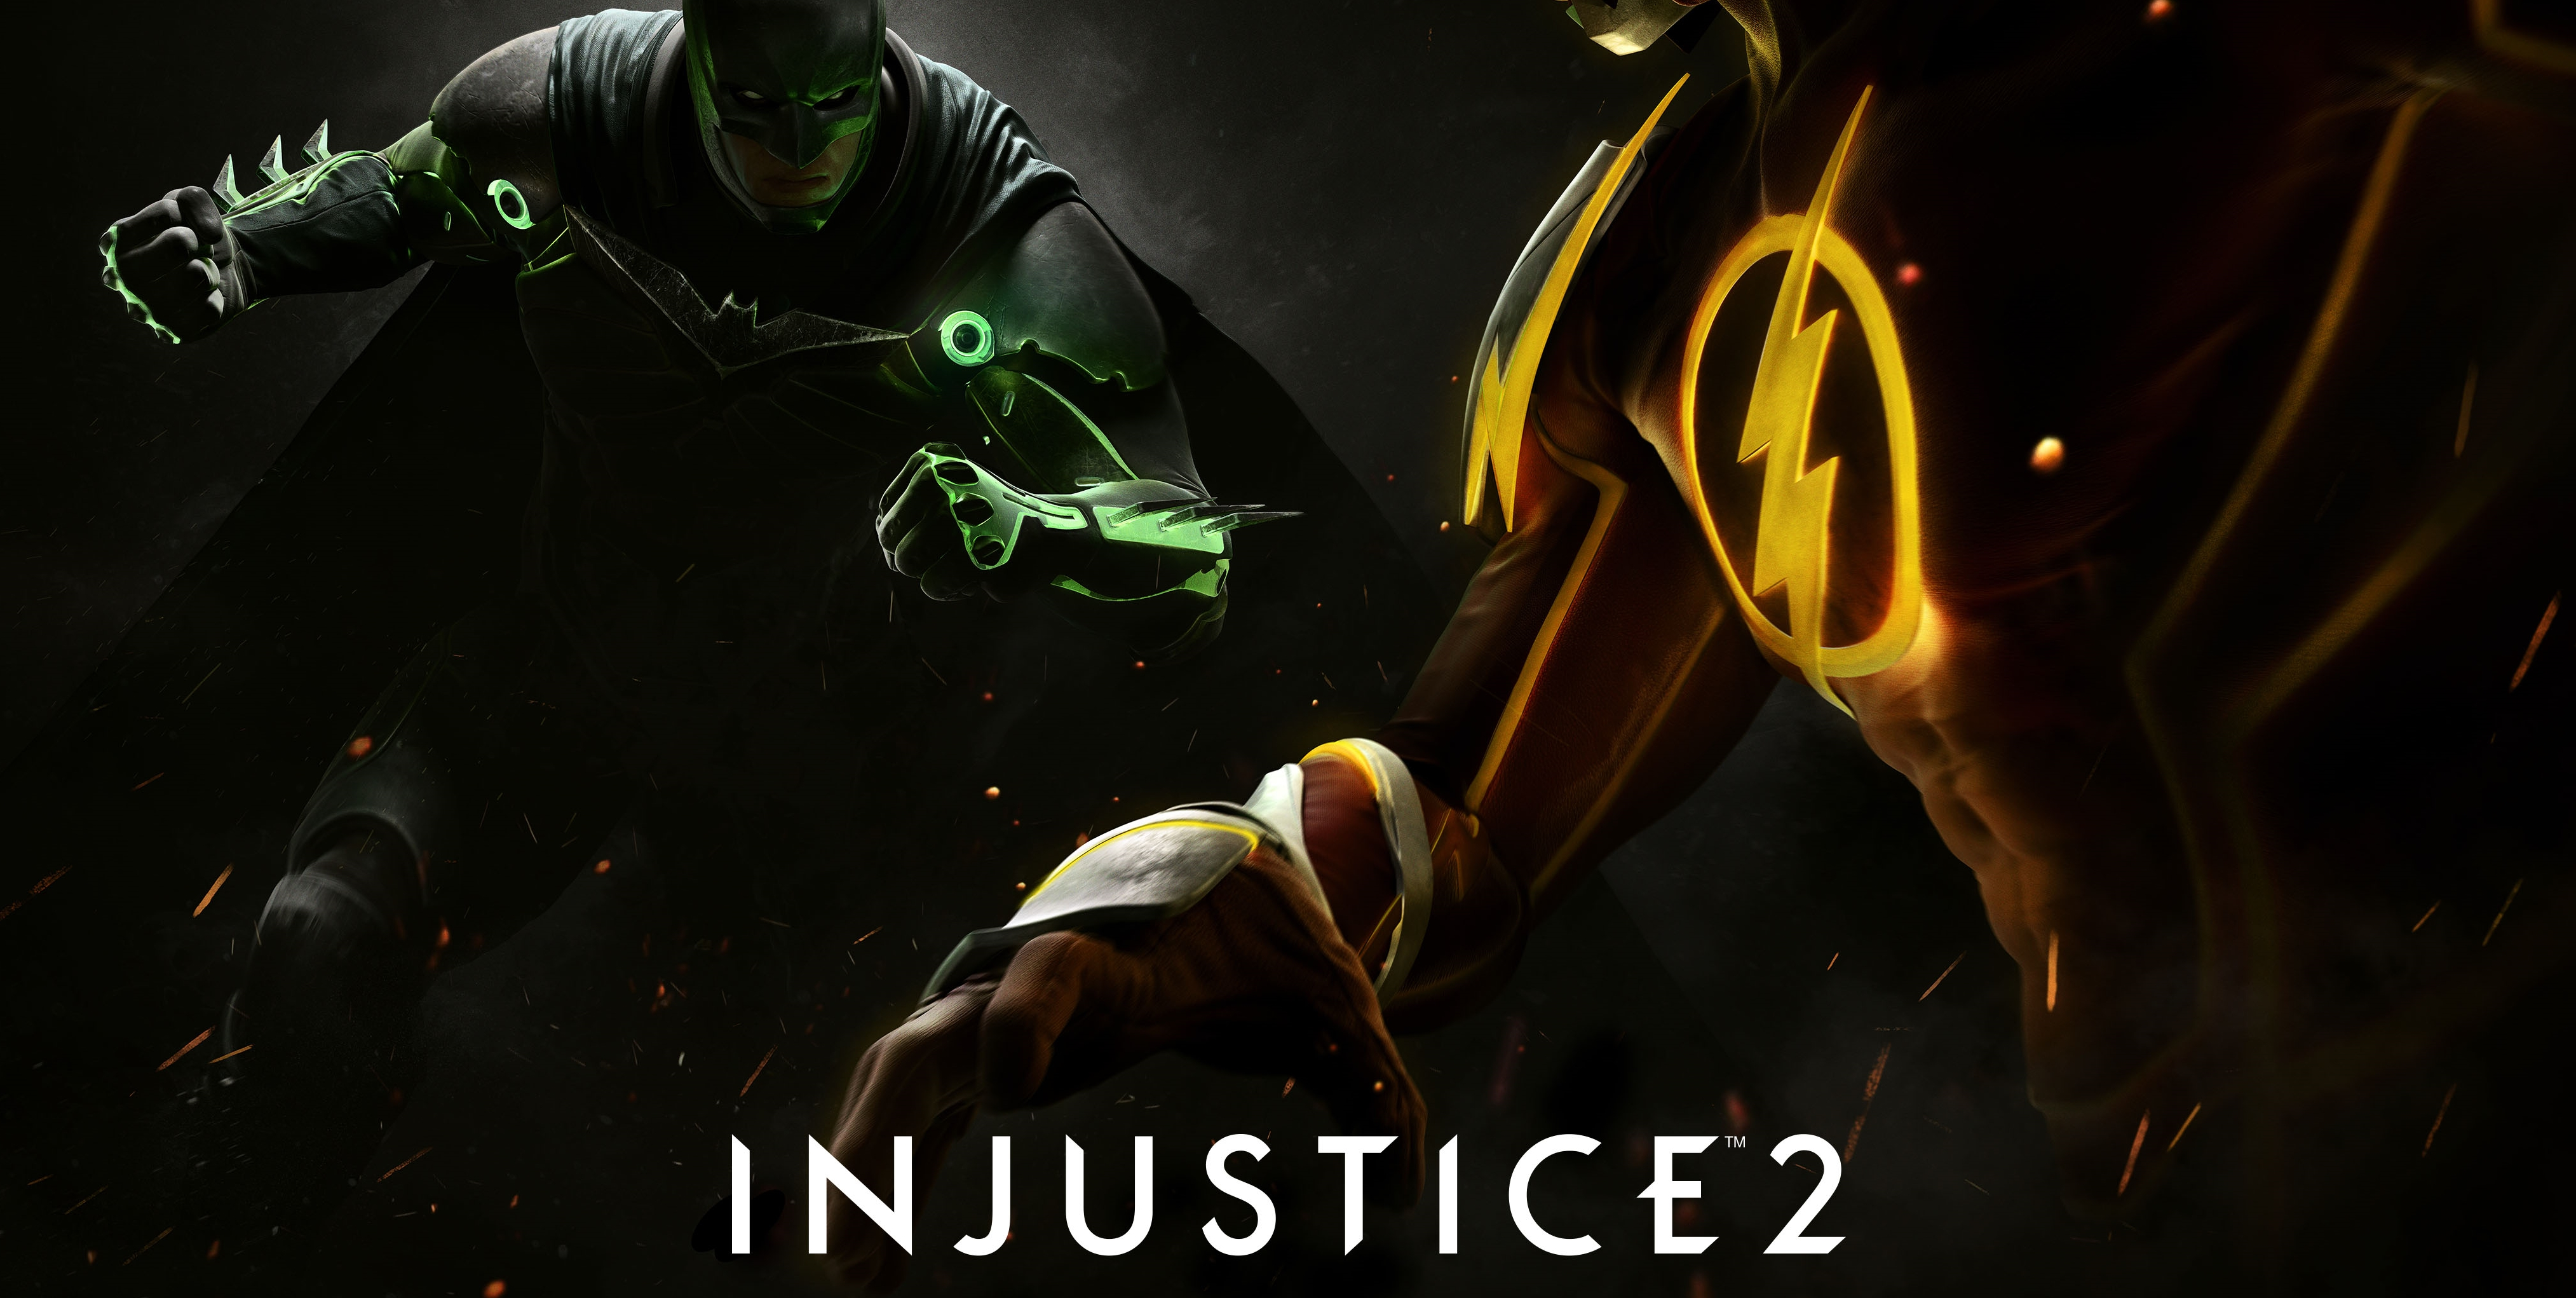 Injustice 2: Joker's Appearance Leaked Through Game's Achievements List